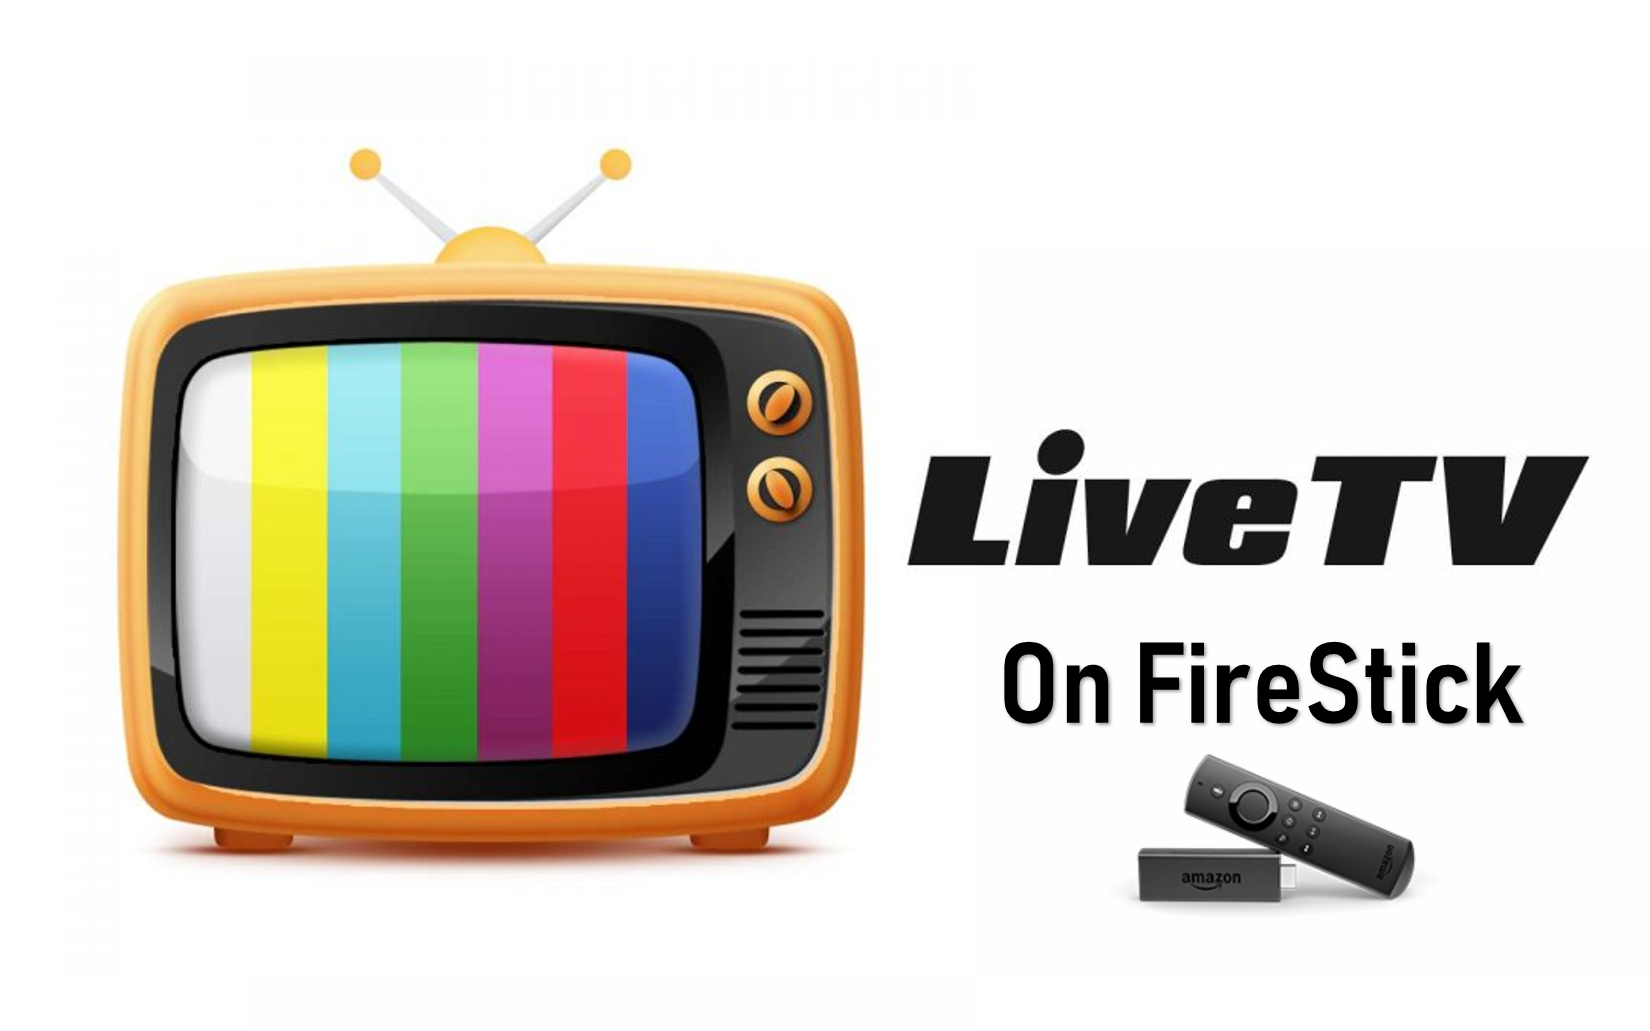 live tv on firestick